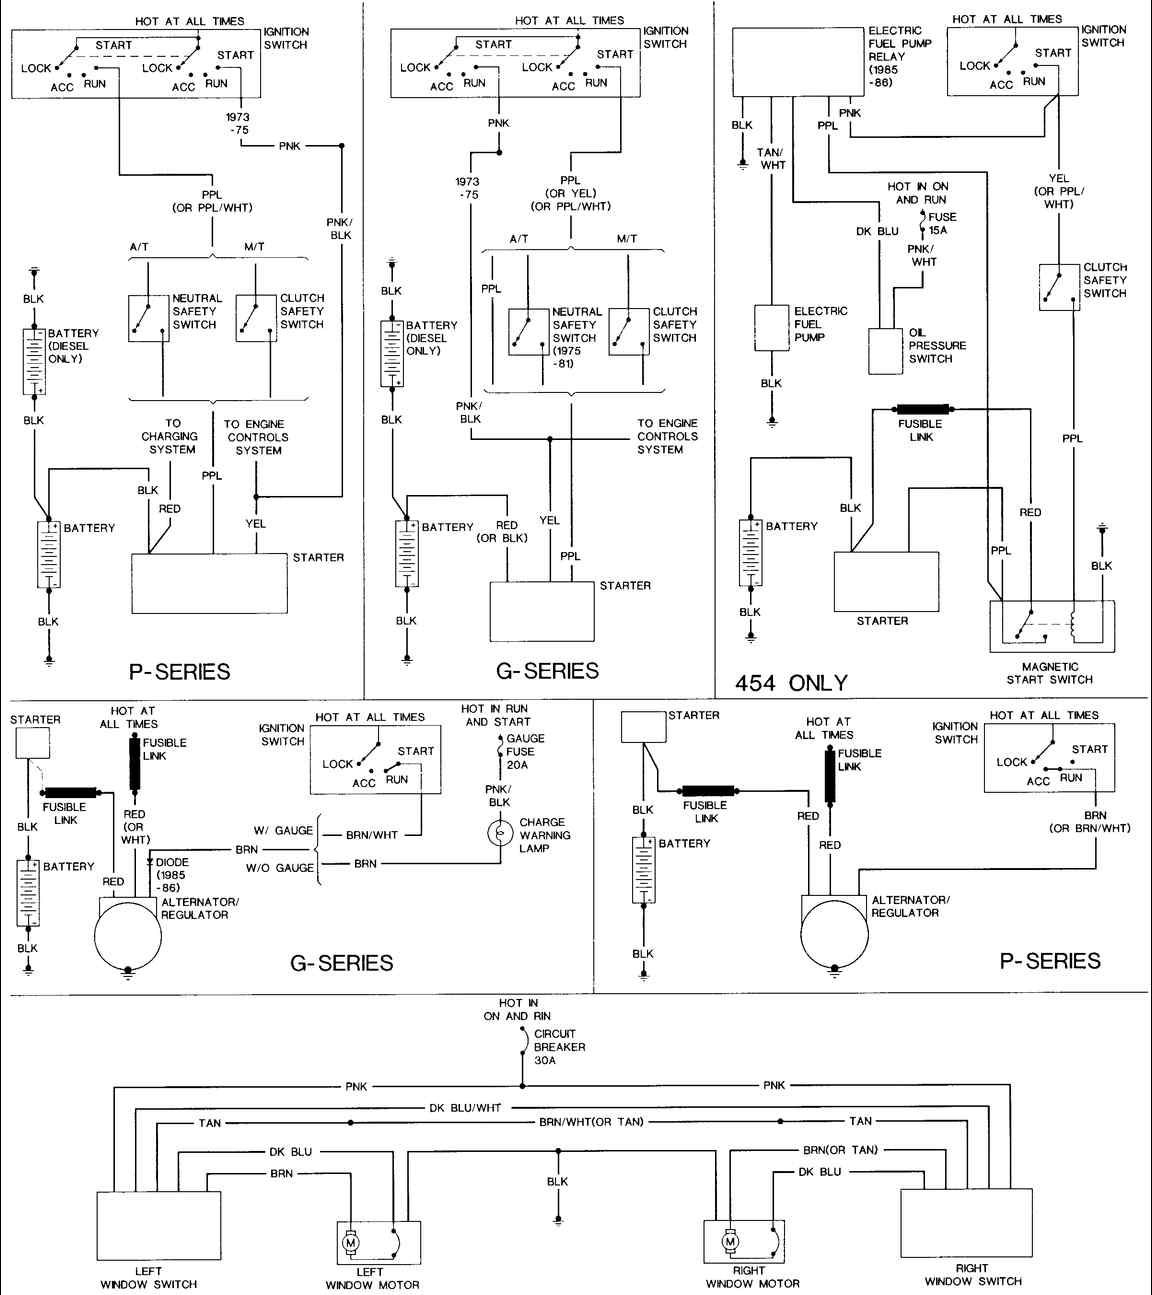 0c73623a181dc376dbb4777e2029d285 85 chevy truck wiring diagram 85 chevy van the steering column 1984 chevy c10 wiring diagram at edmiracle.co